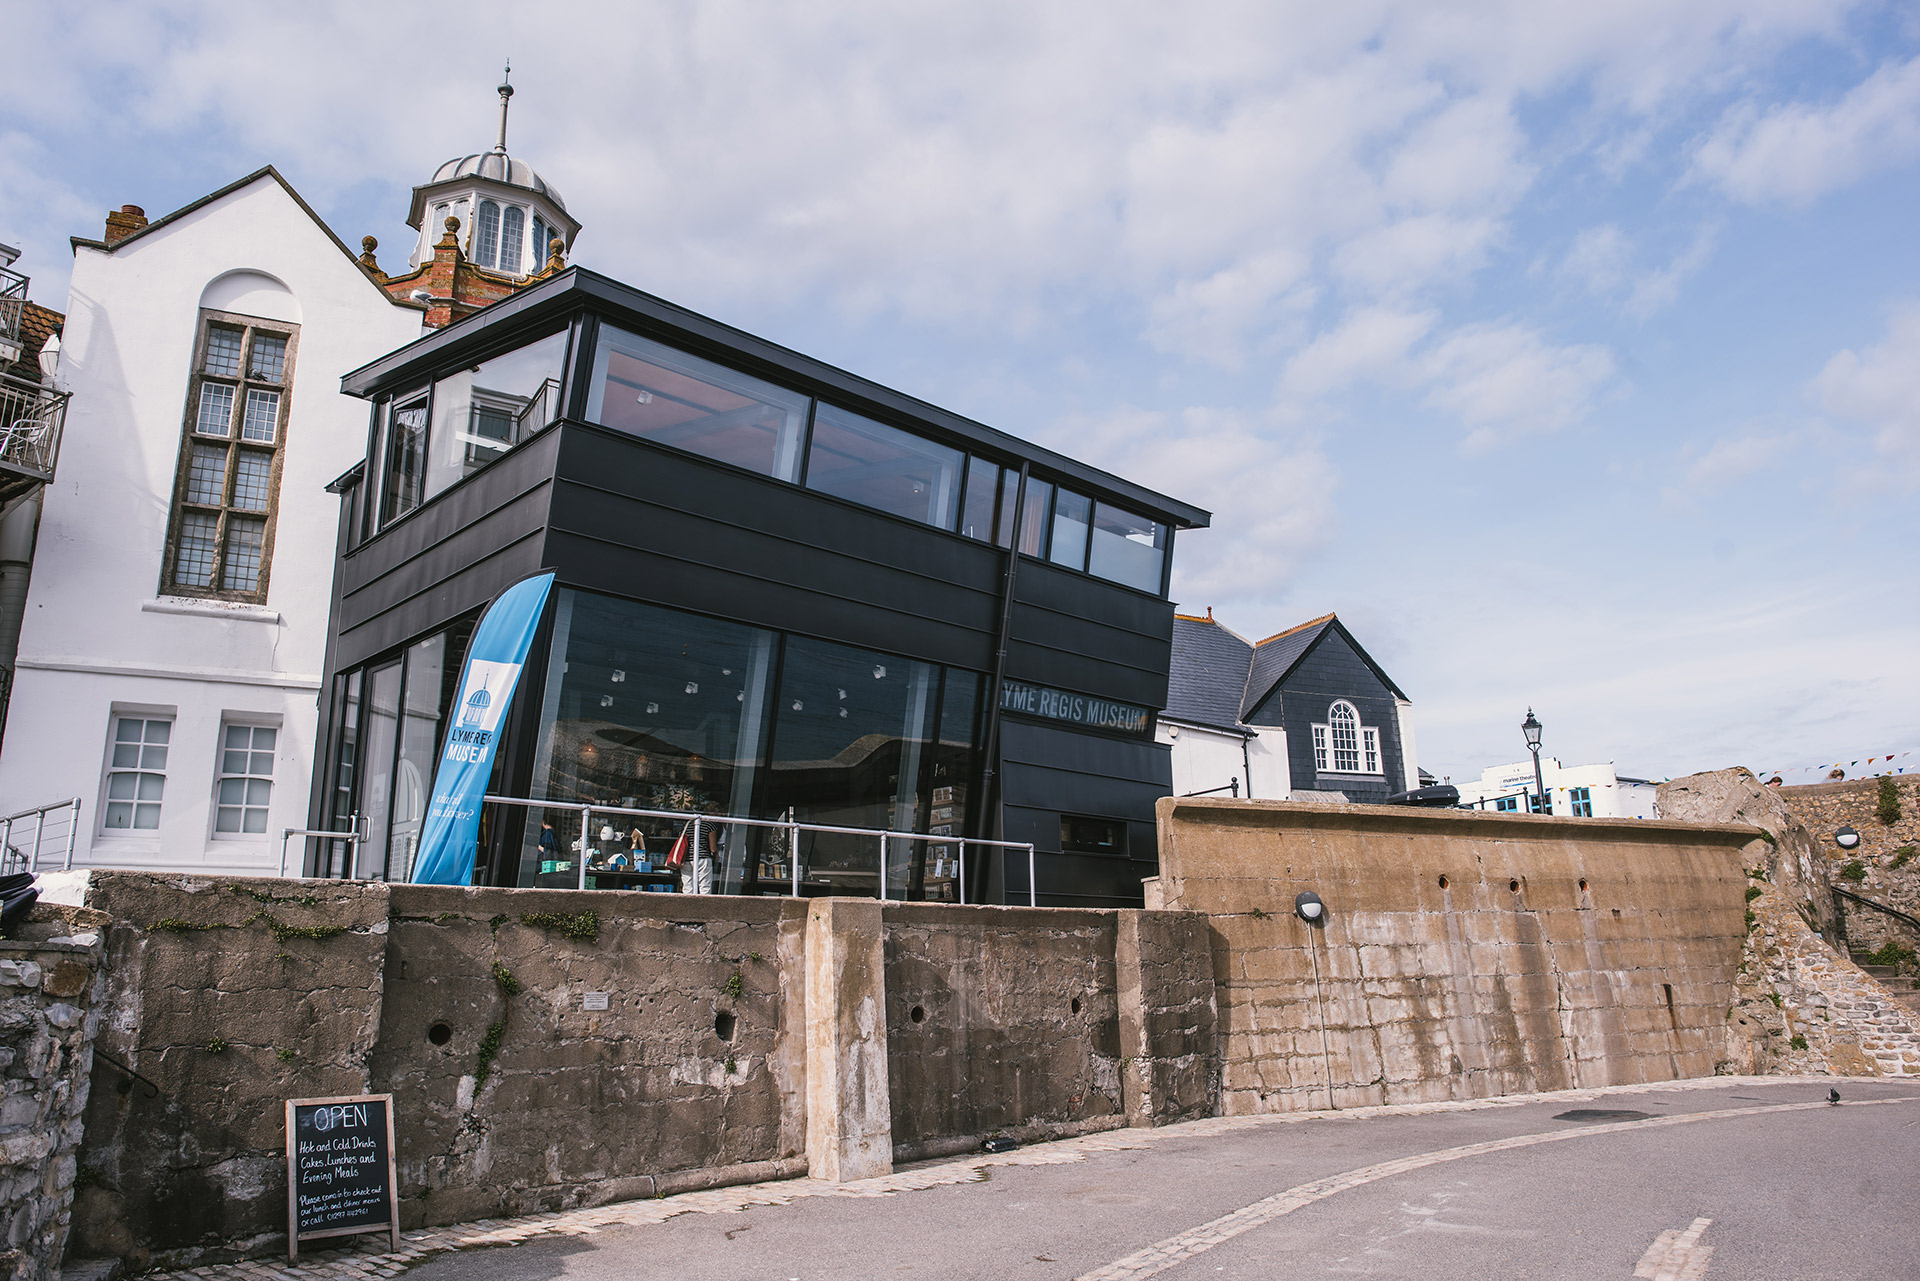 zinc and glass exterior for Lyme Regis Museum in Devon